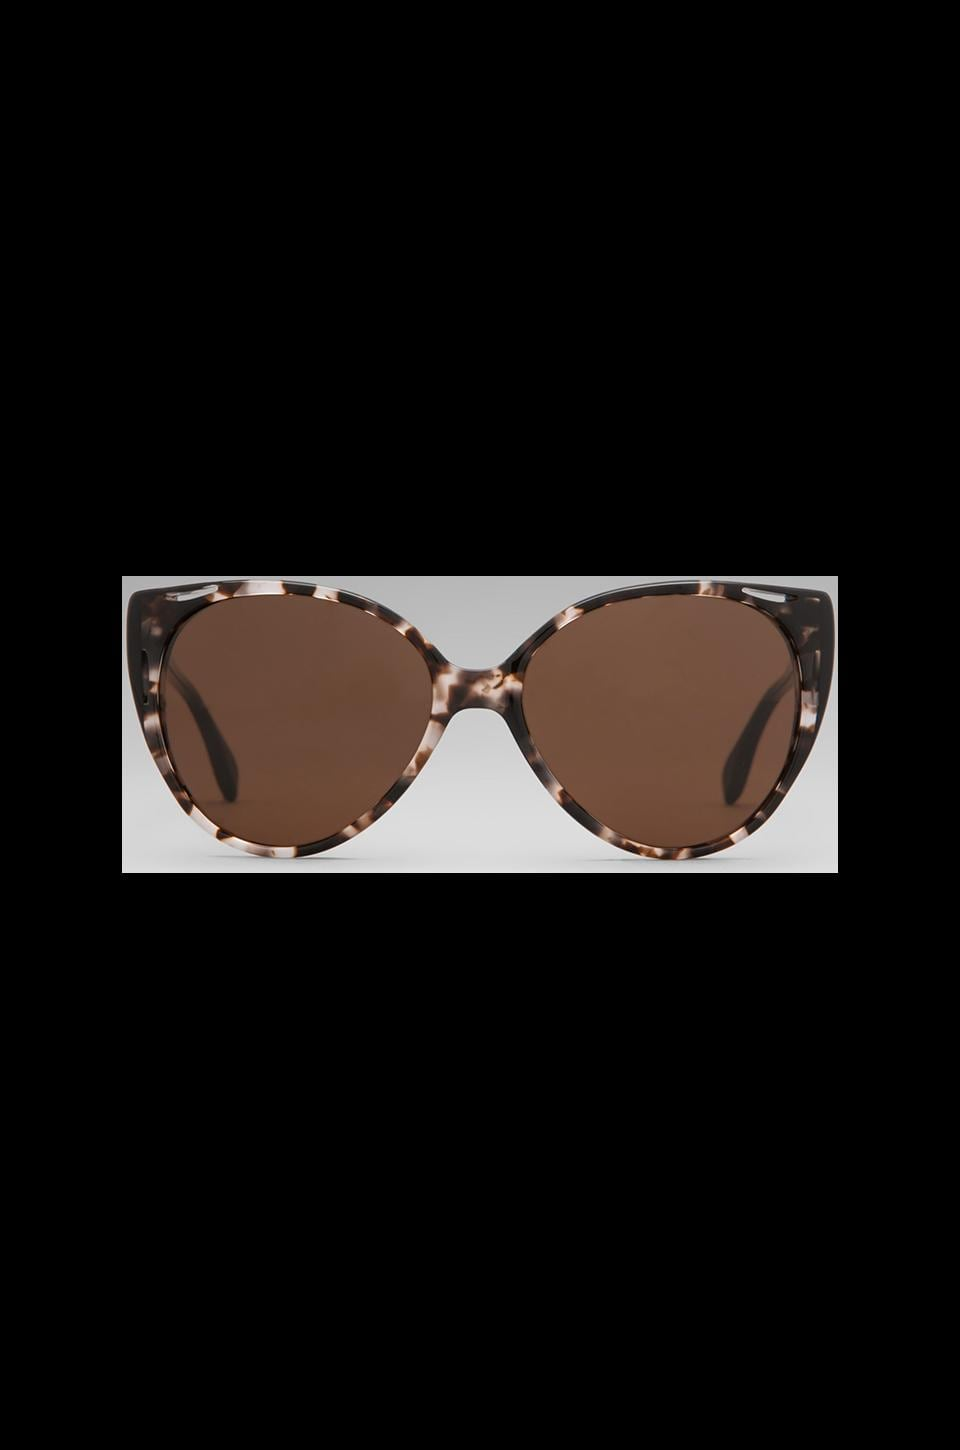 House of Harlow 1960 House of Harlow Tyler Sunglasses in Clear Tortoise